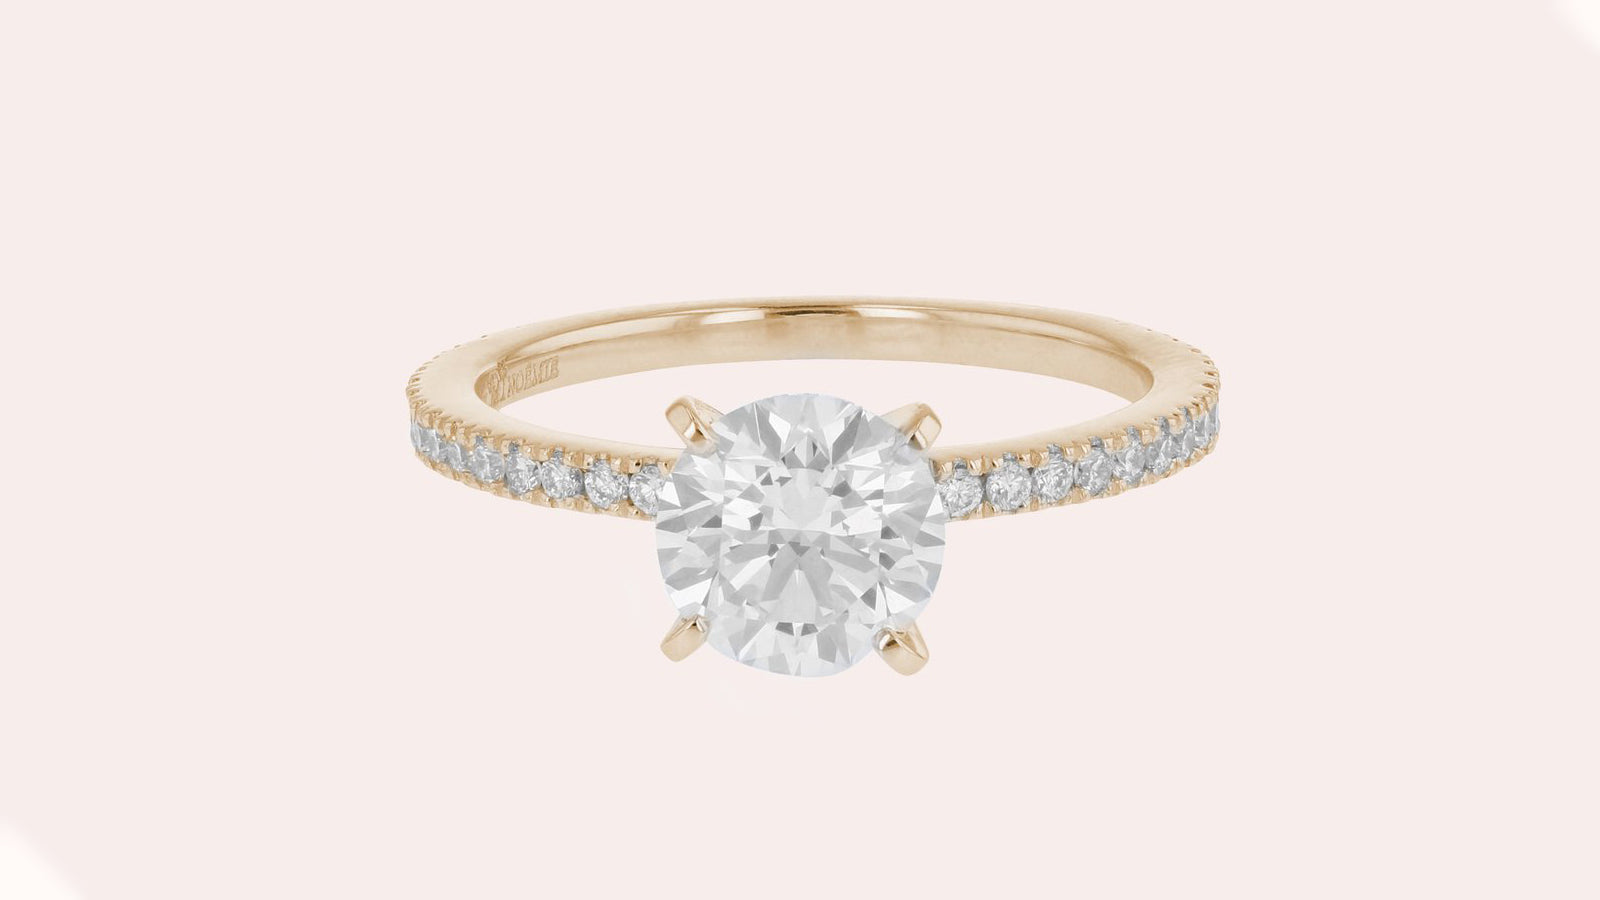 The Solitaire Pavé Ring